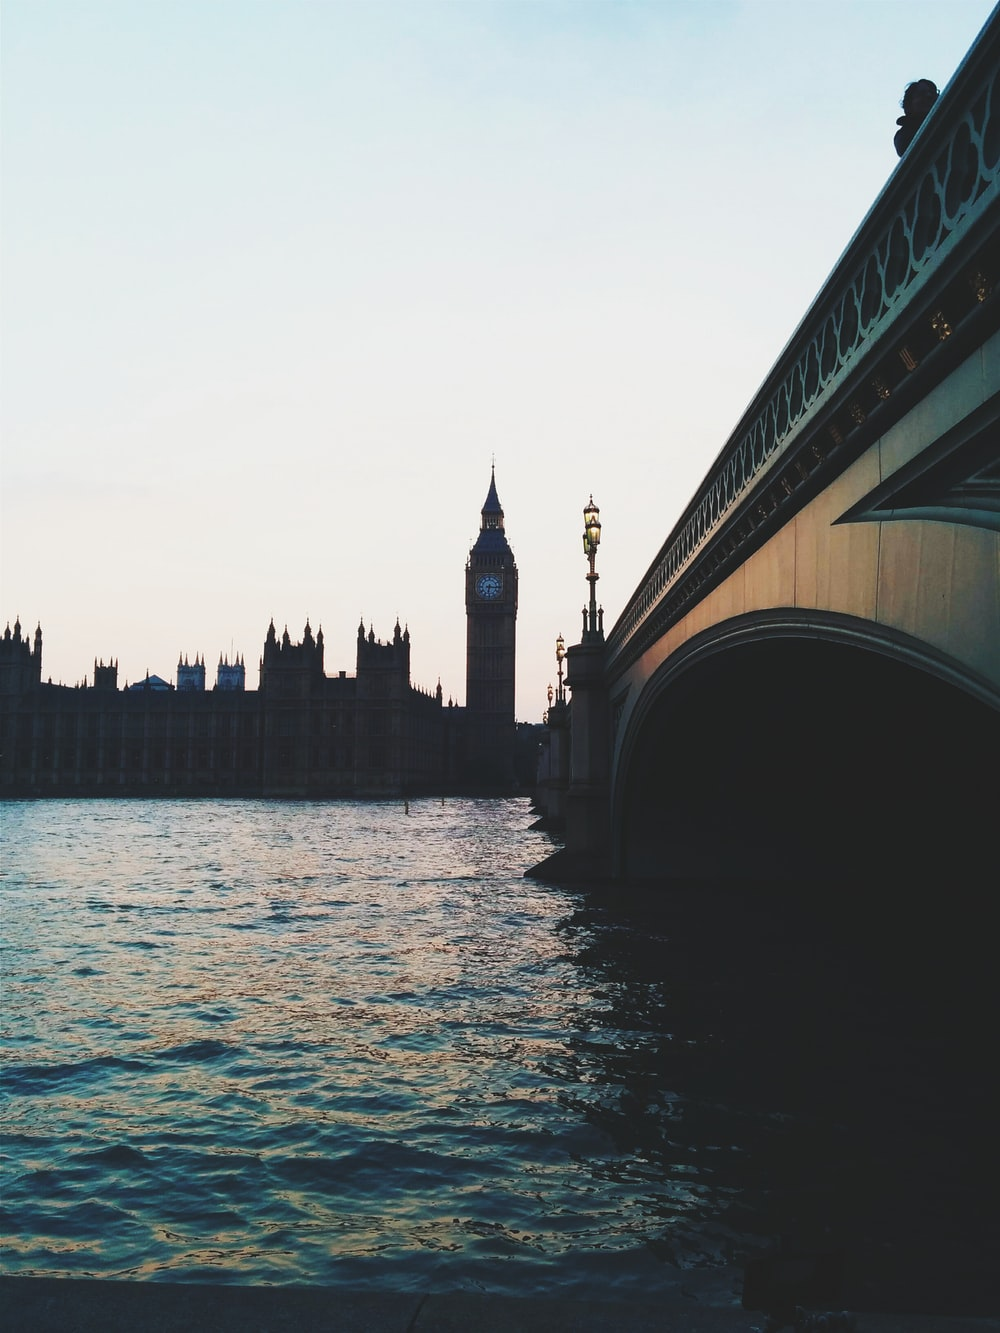 Westminster Palace and Elizabeth Tower, London